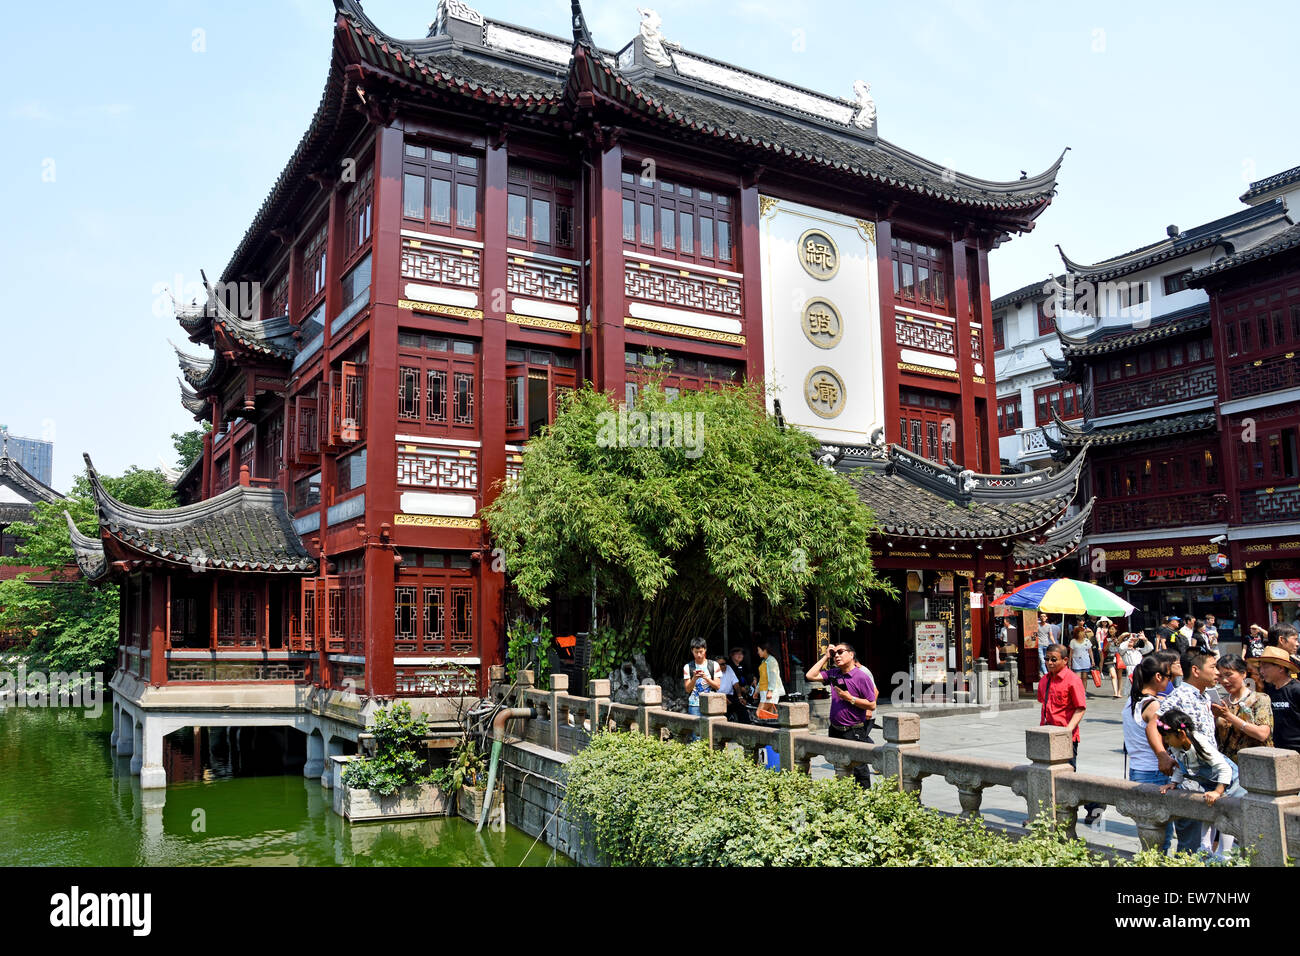 Hu Xin Ting Teahouse Yuyuan Garden Bazaar Buildings Founded By Ming Stock Photo Royalty Free ...